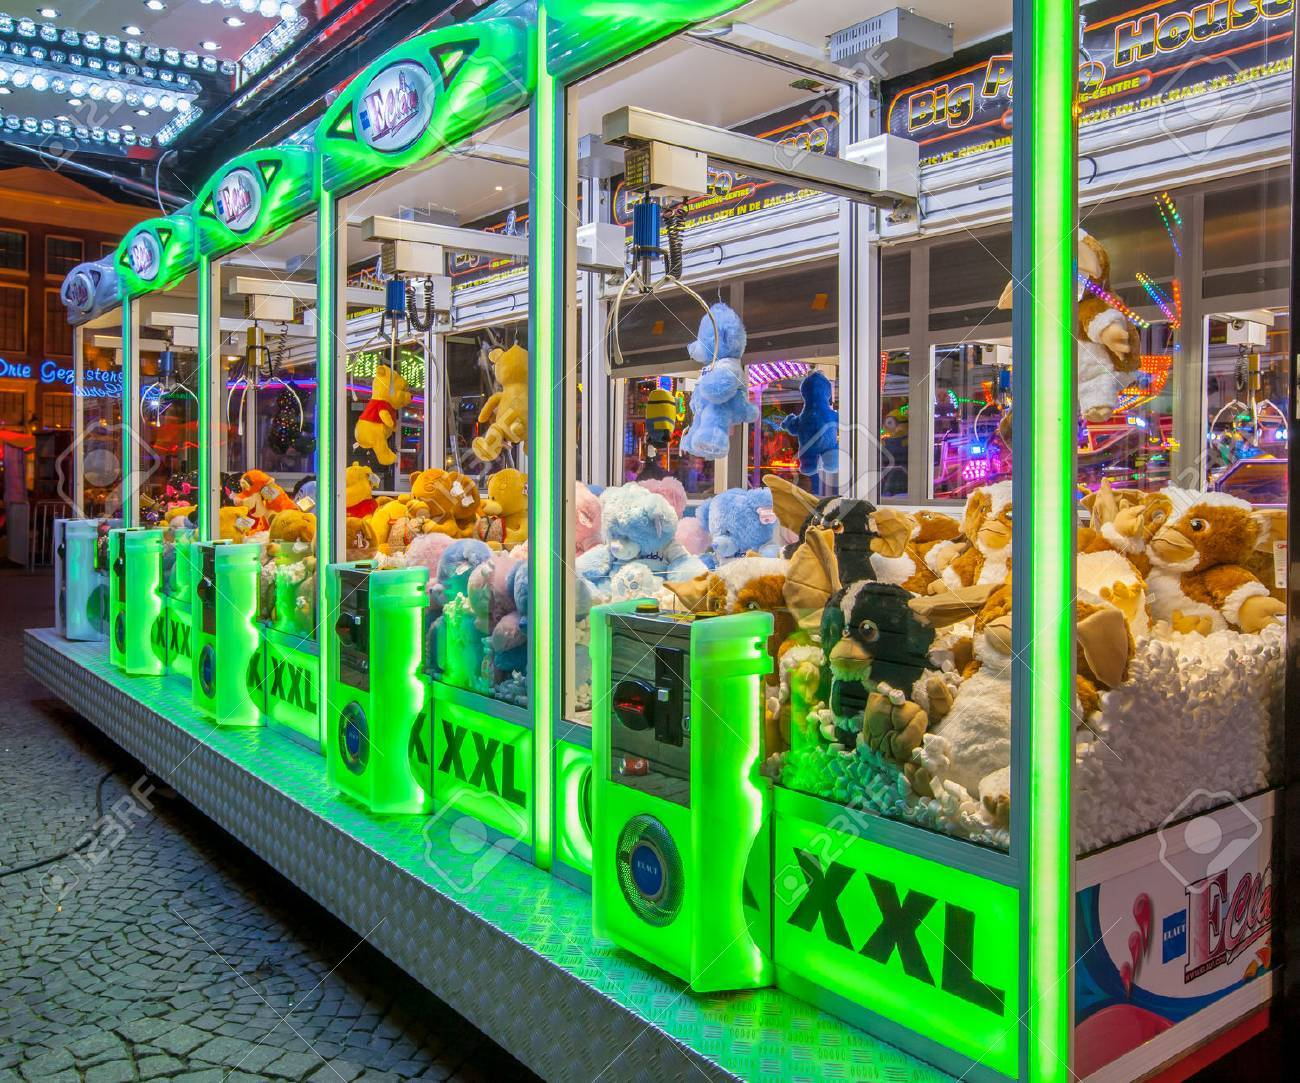 GRONINGEN, THE NETHERLANDS-MAY 5, 2015: Arcade crane vending machine with colourful green lights on the annual funfair on central square. - 53011976